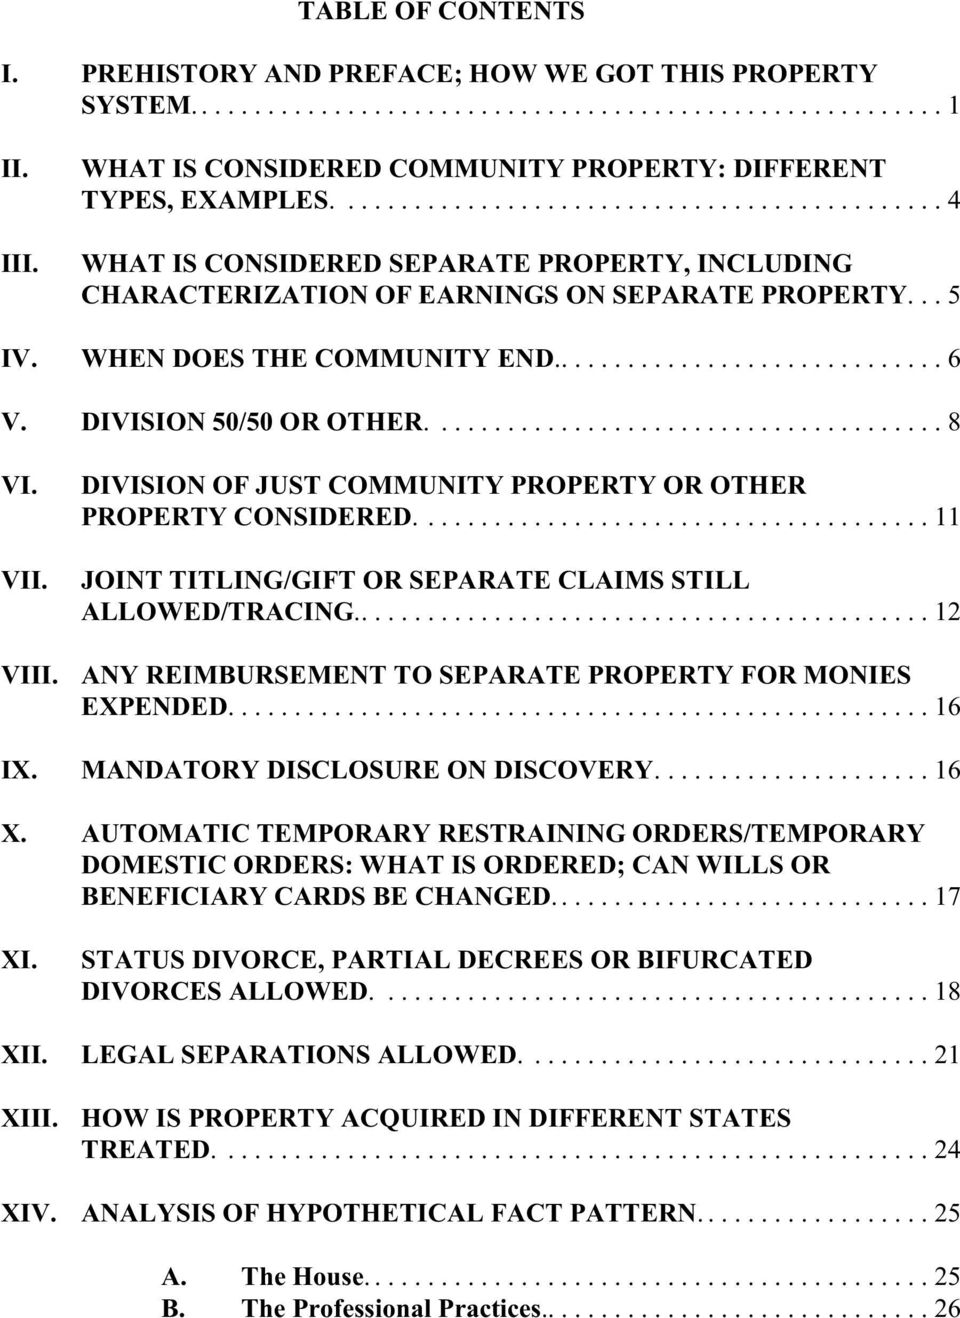 DIVISION OF JUST COMMUNITY PROPERTY OR OTHER PROPERTY CONSIDERED....11 JOINT TITLING/GIFT OR SEPARATE CLAIMS STILL ALLOWED/TRACING...12 ANY REIMBURSEMENT TO SEPARATE PROPERTY FOR MONIES EXPENDED.